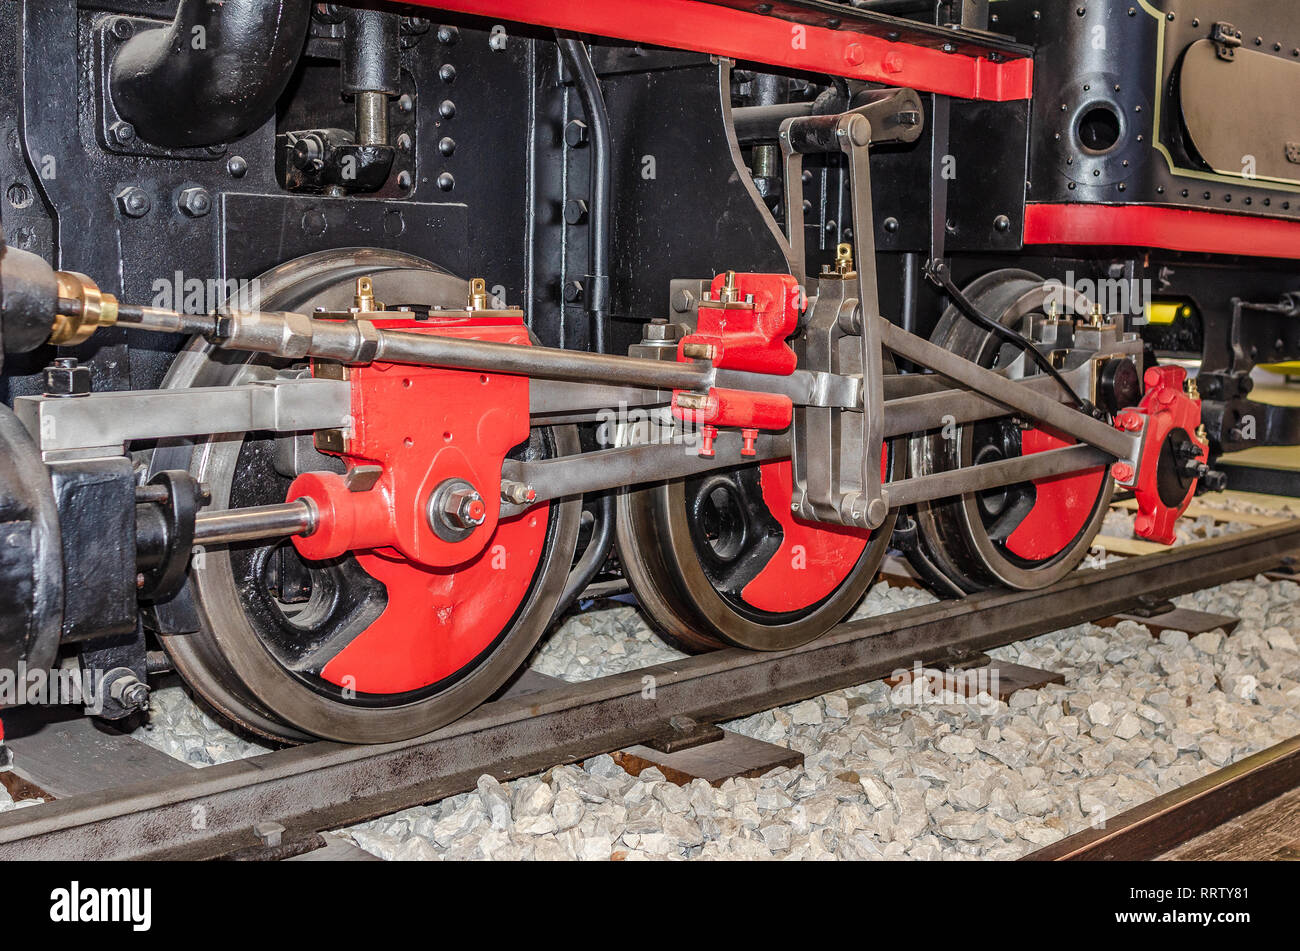 The wheels of the old locomotive. Stock Photo